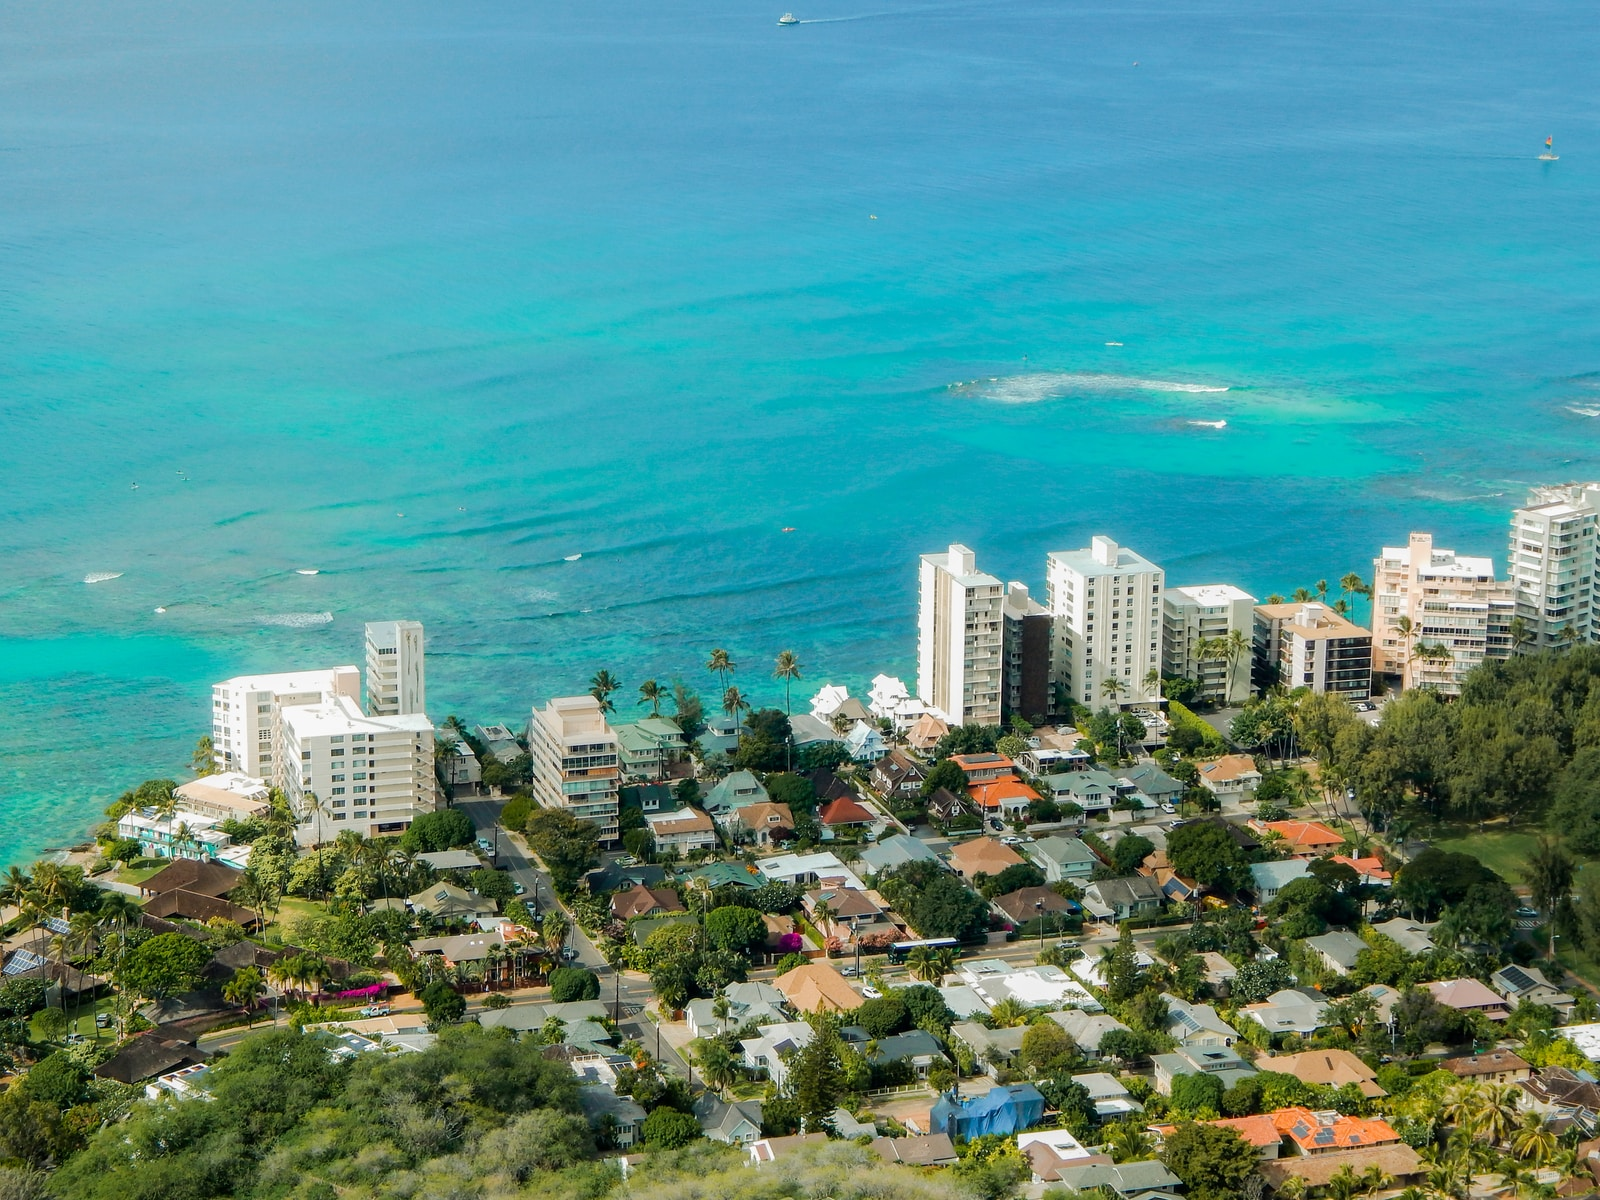 aerial view of buildings and houses by the sea